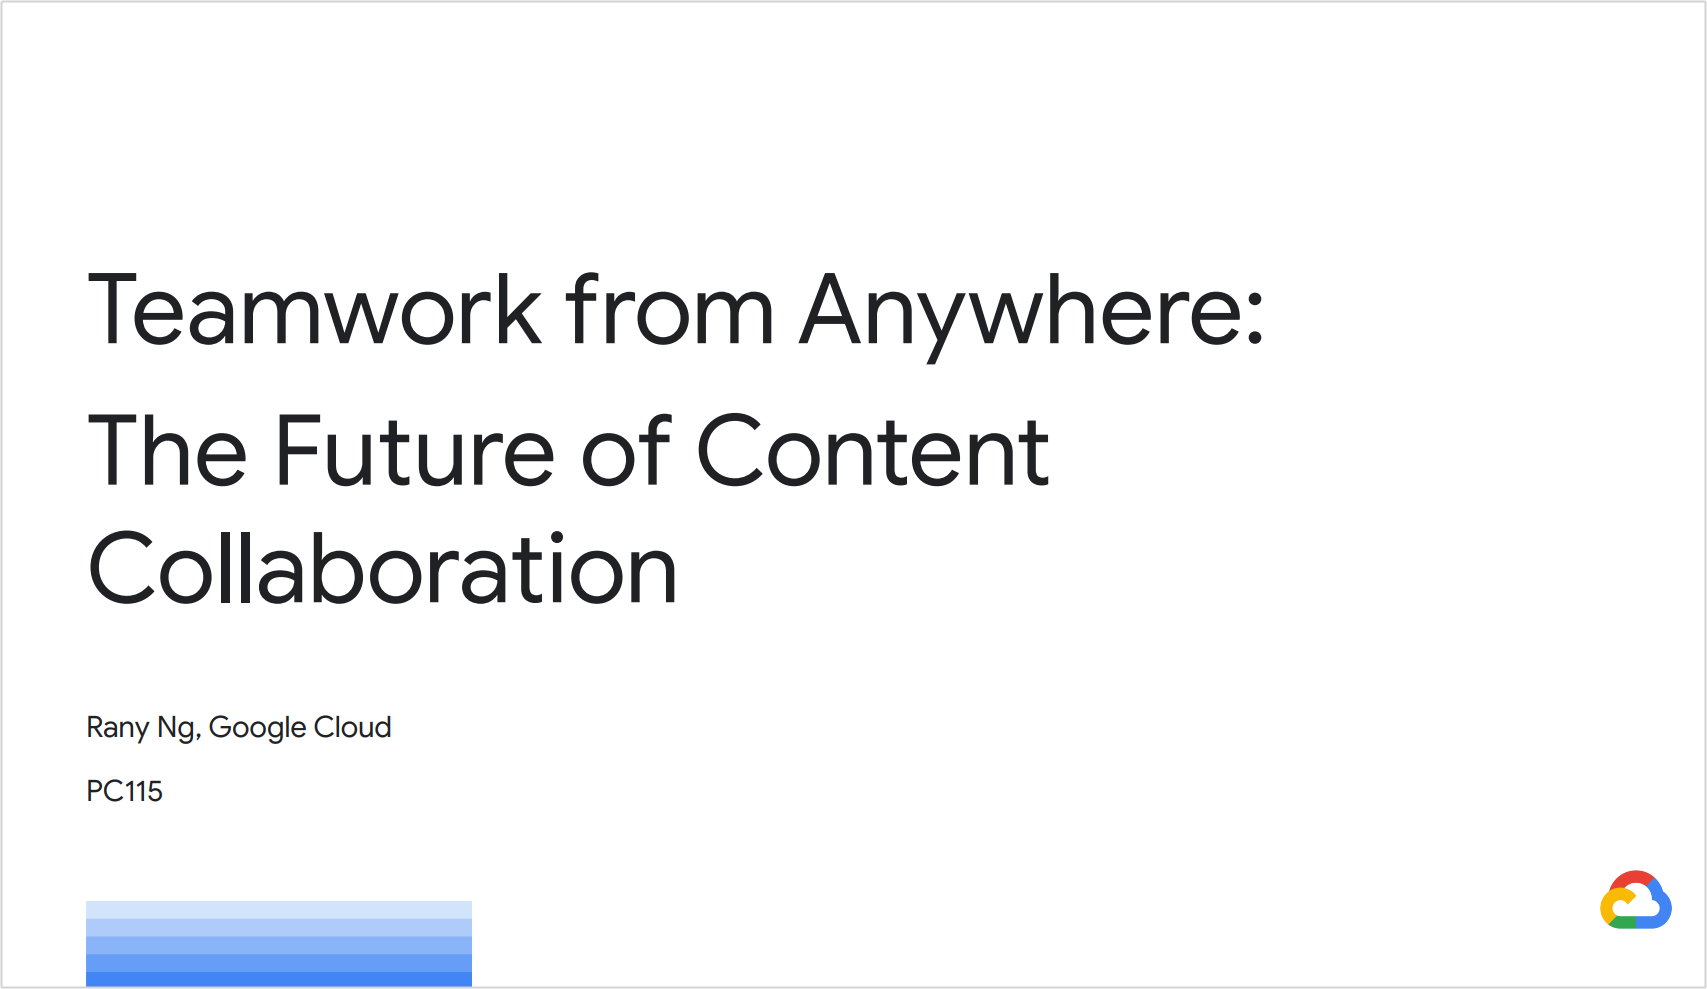 Teamwork from Anywhere: G Suite's Vision for Content Collaboration